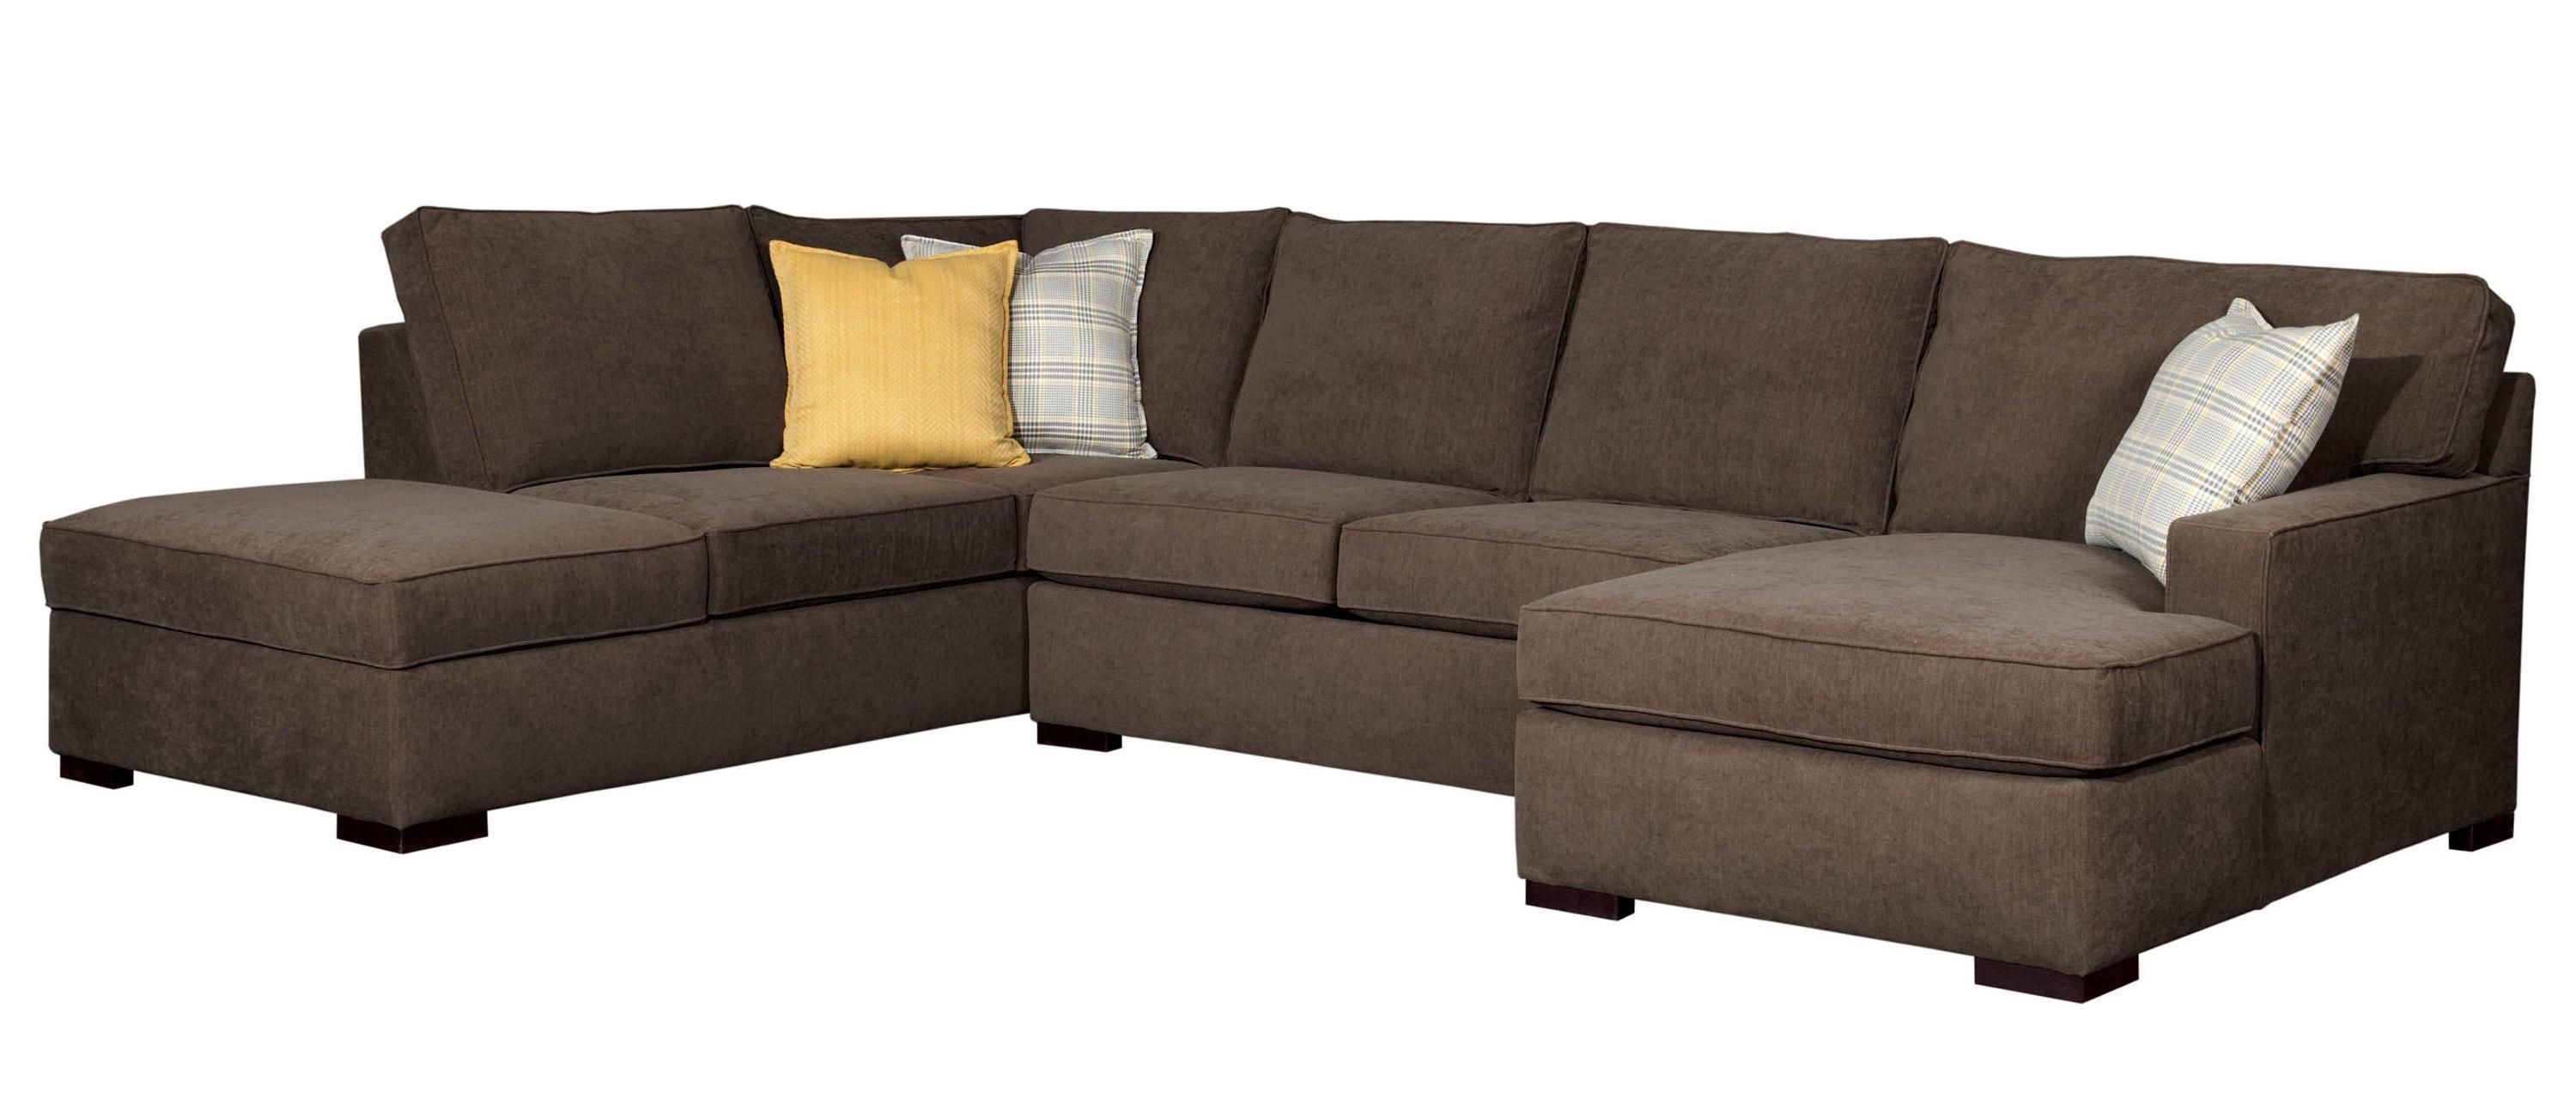 Broyhill Furniture Raphael Contemporary Sectional Sofa With Raf Inside Broyhill Sectional Sofas (View 2 of 15)